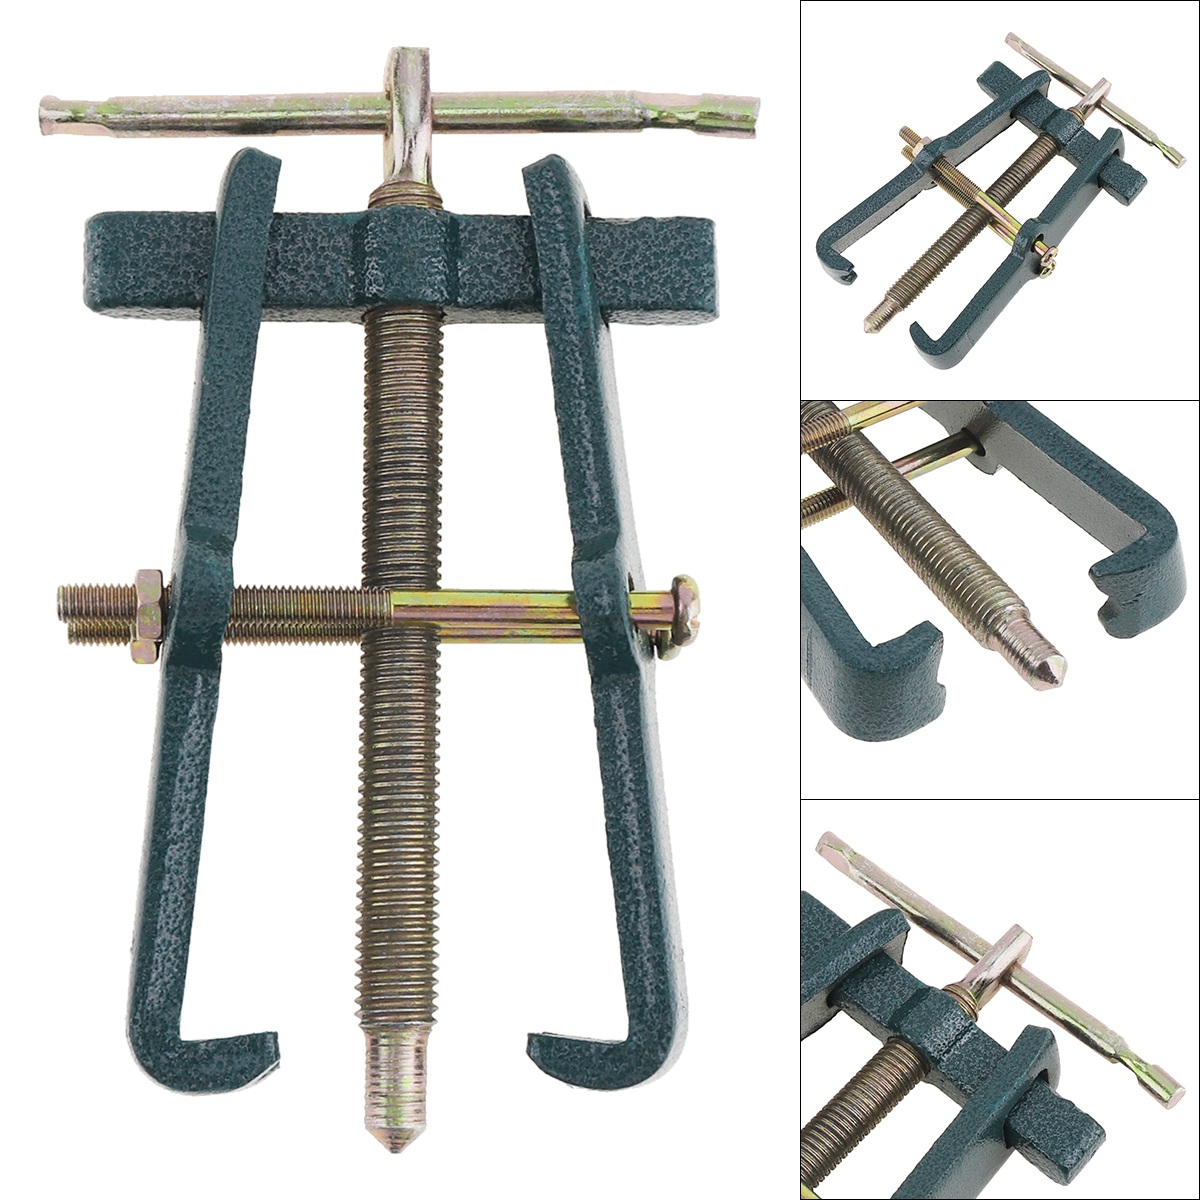 ChgImposs 6 Inch Two-claw Puller Separate Lifting Device Multi-purpose Pull Strengthen Bearing Rama for Auto Mechanic Hand Tools